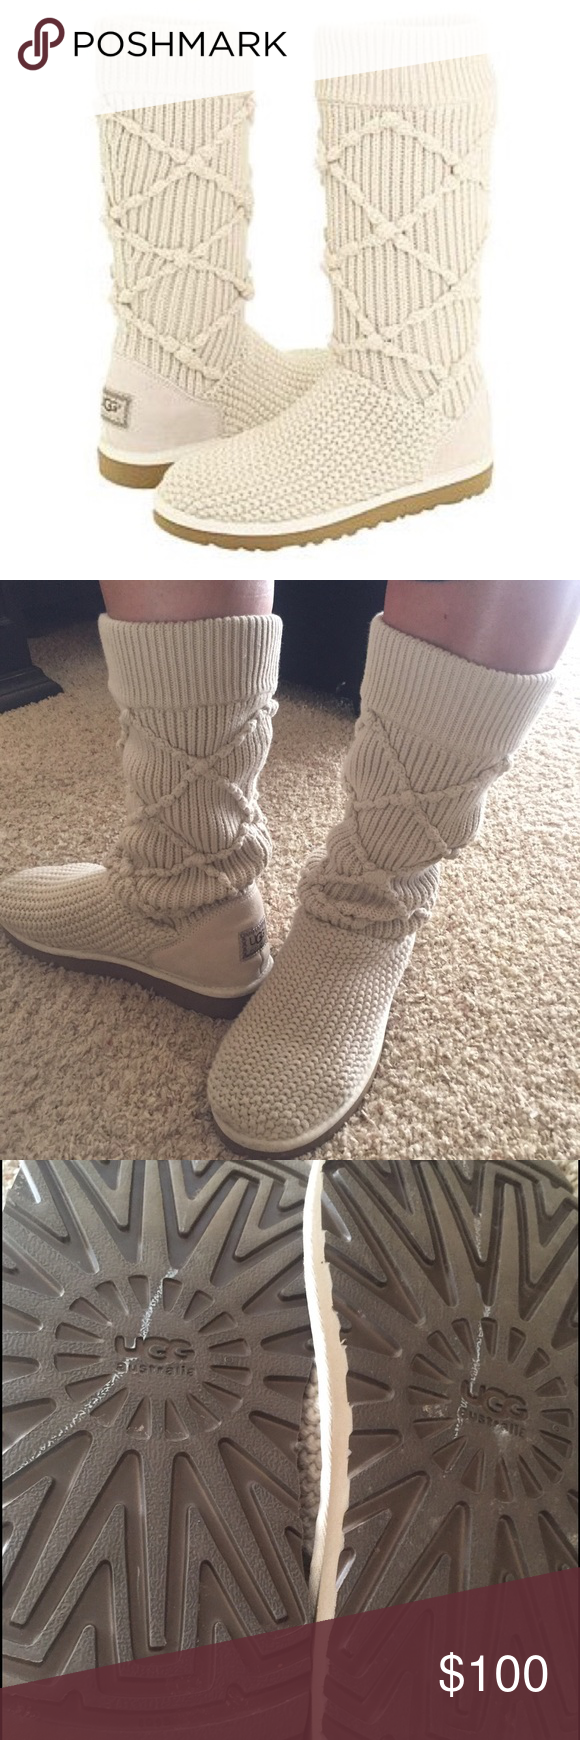 2b79062f6e2 UGG Argyle Knit Boots Great condition! Worn a few times. UGG Shoes ...